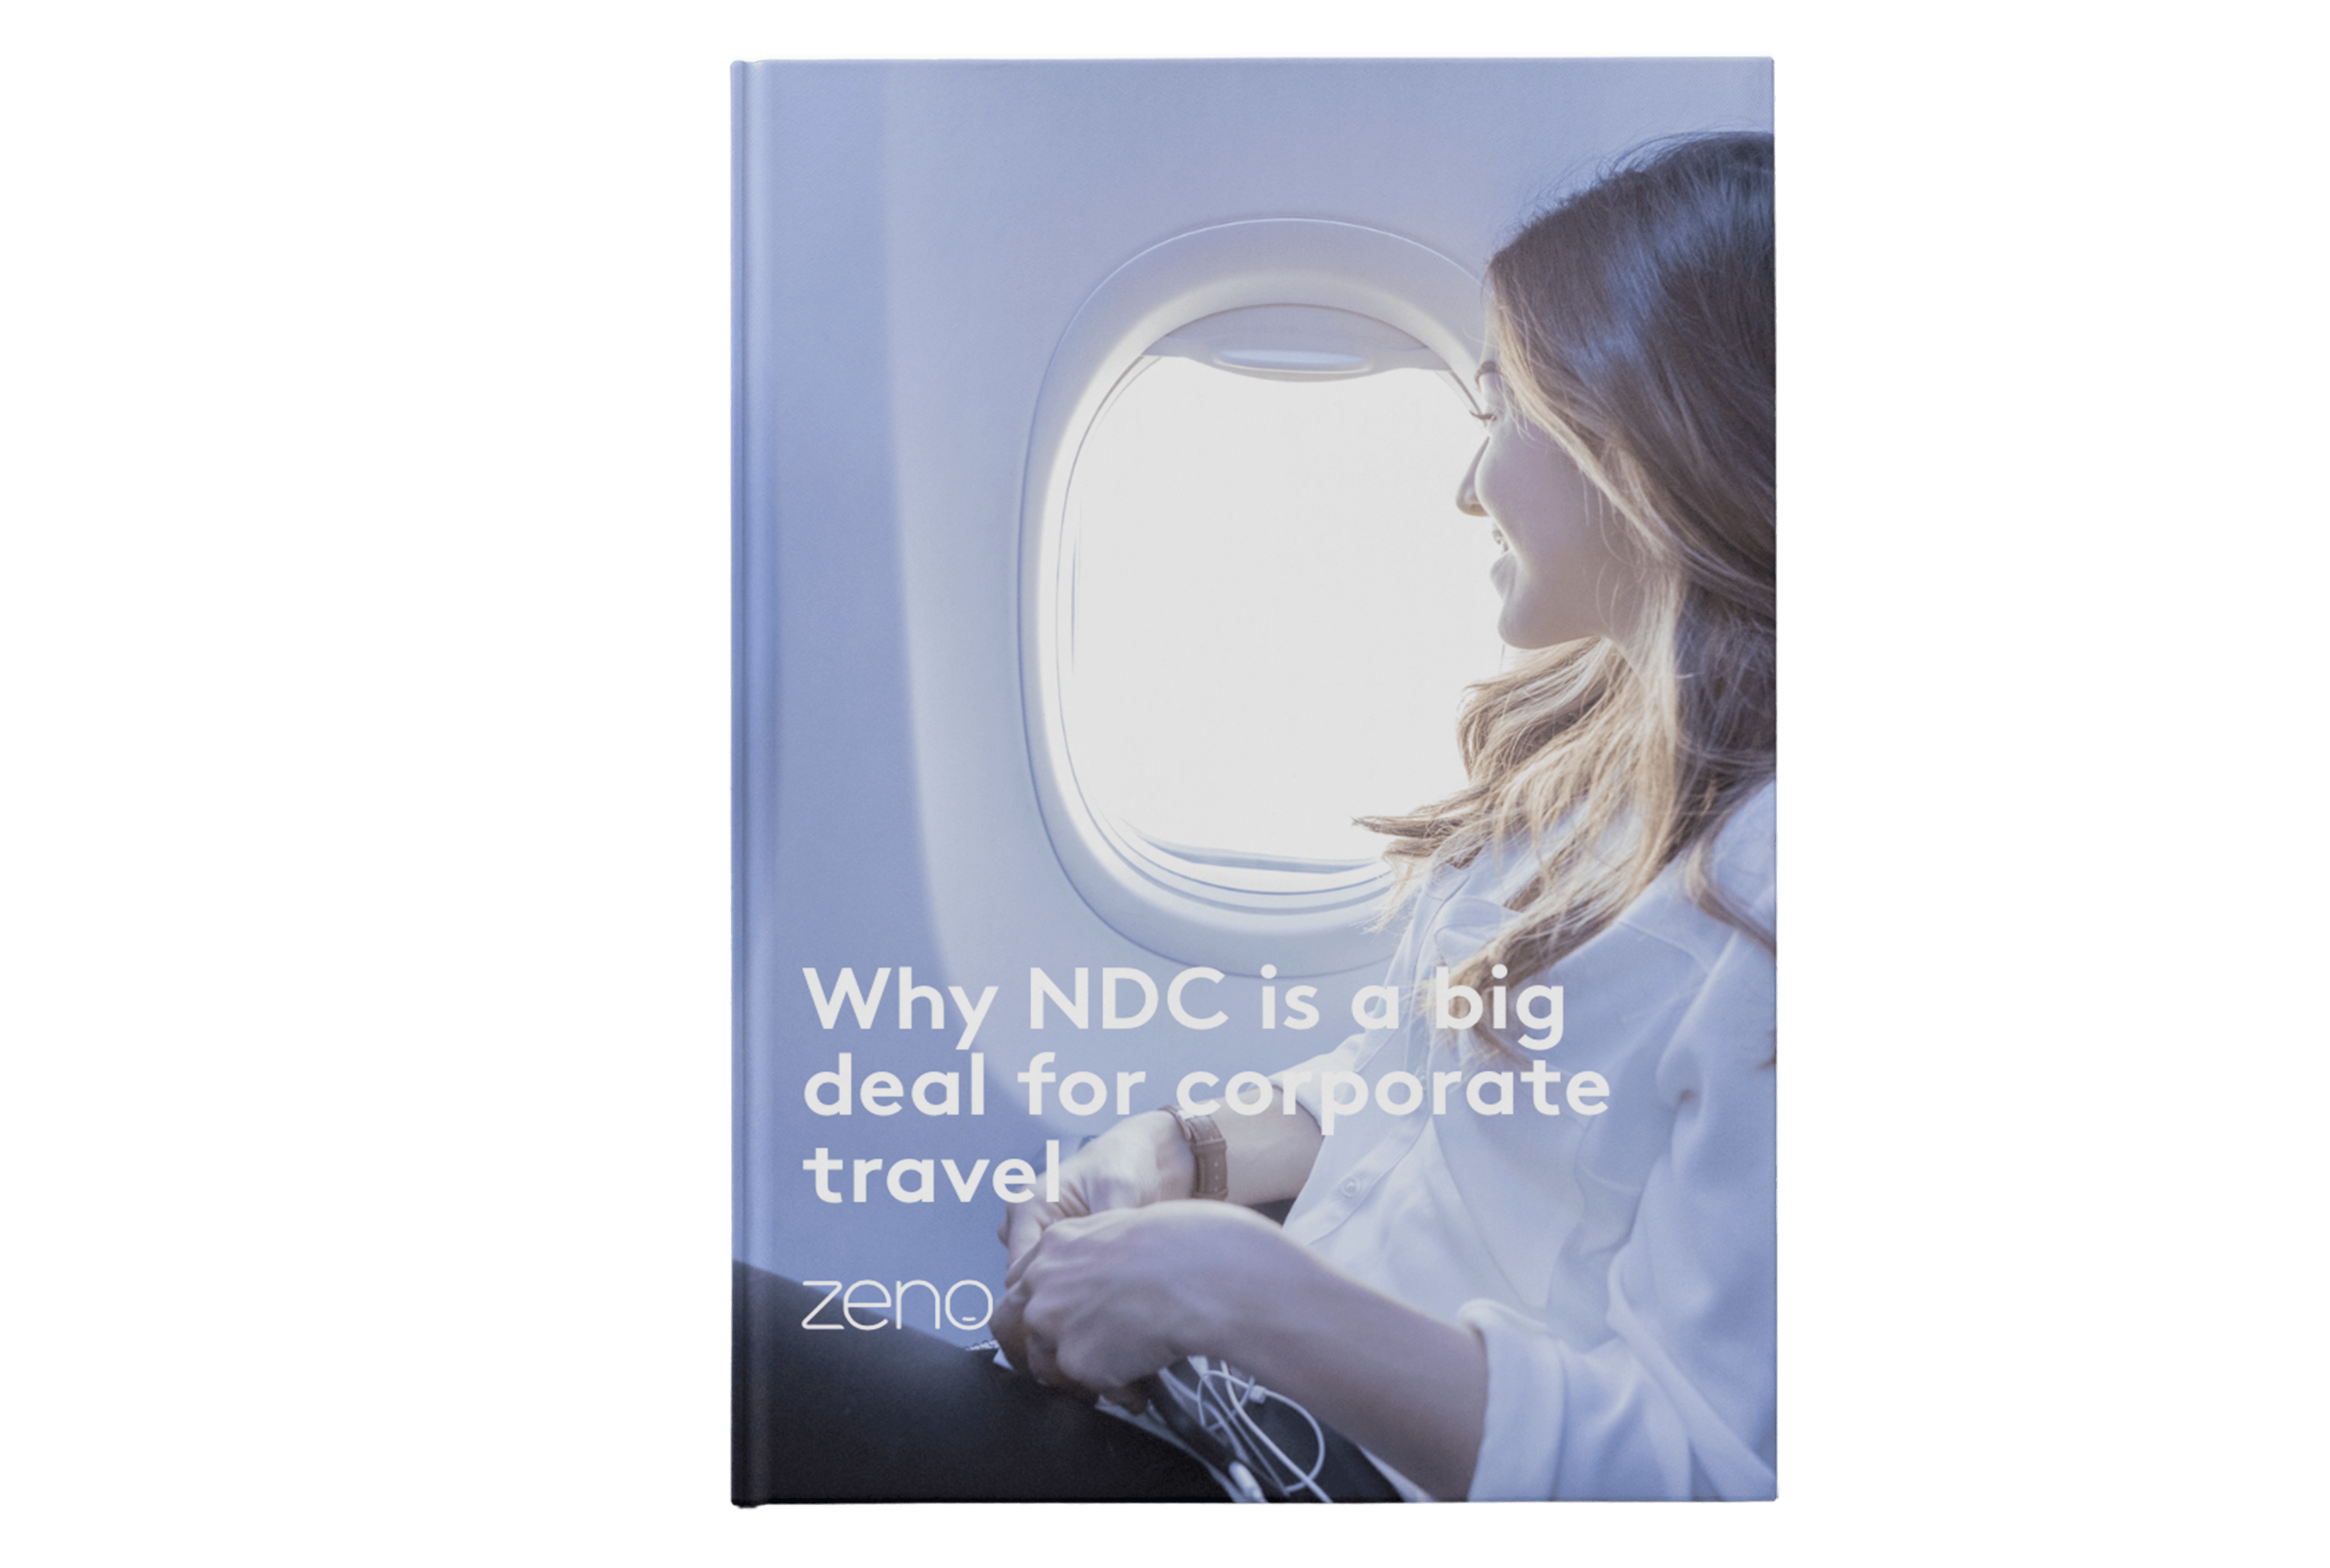 NDC eBook - Why NDC is a big deal for corporate travel